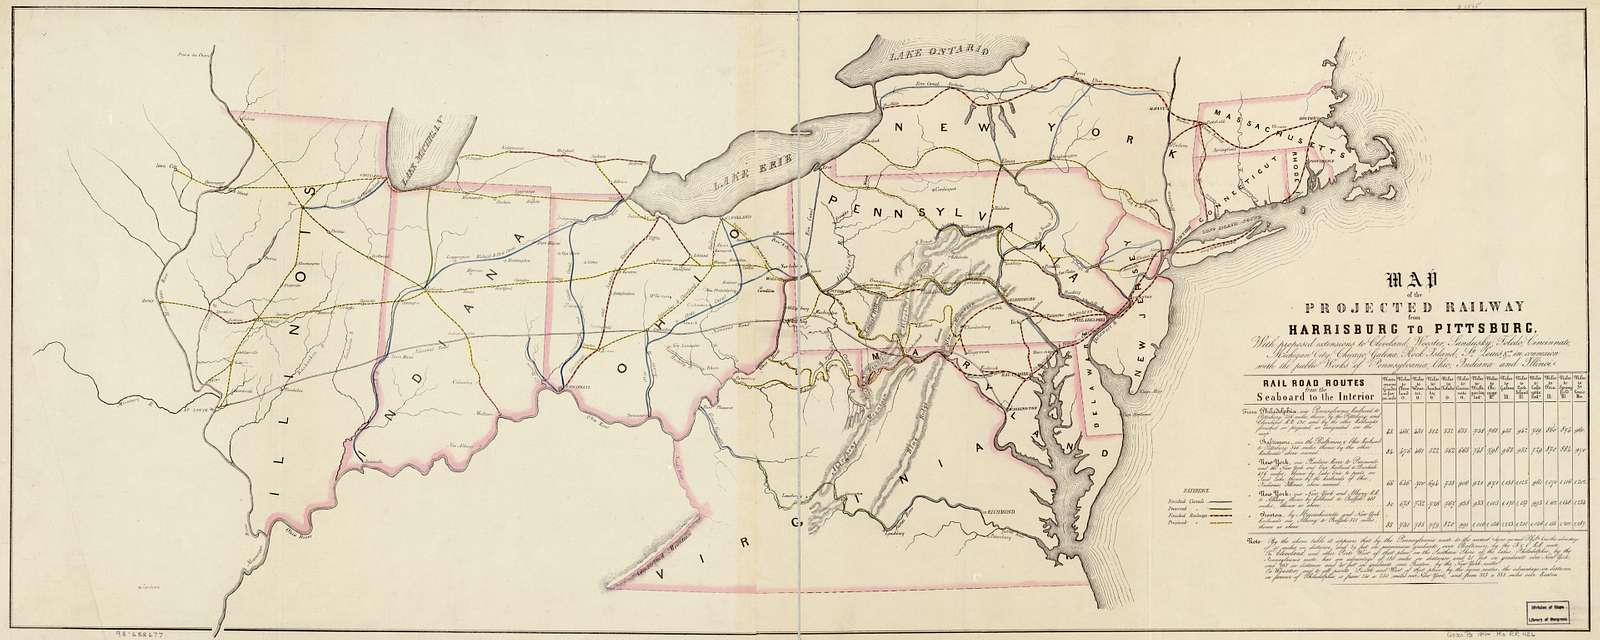 Map of the projected railway from Harrisburg to Pittsburg [sic], with proposed extension to Cleveland, Wooster, Sandusky, Toledo, Cincinnati; Michigan City, Chicago, Galena, Rock Island, St. Louis, &a; in connection with the public works of Pennsylvania, Ohio, Indiana and Illinois.